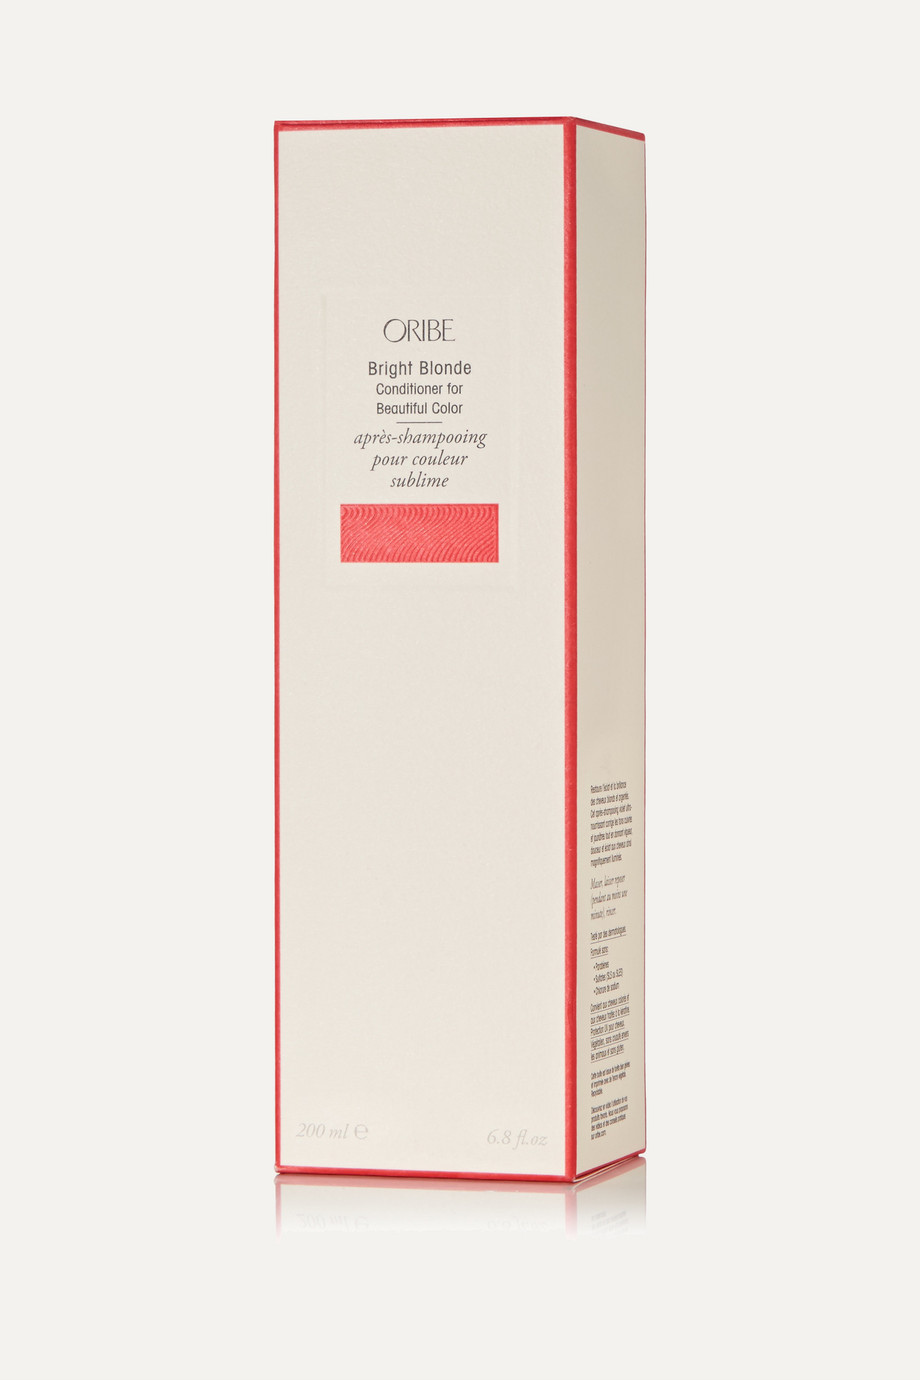 Oribe Bright Blonde Conditioner for Beautiful Color, 200ml